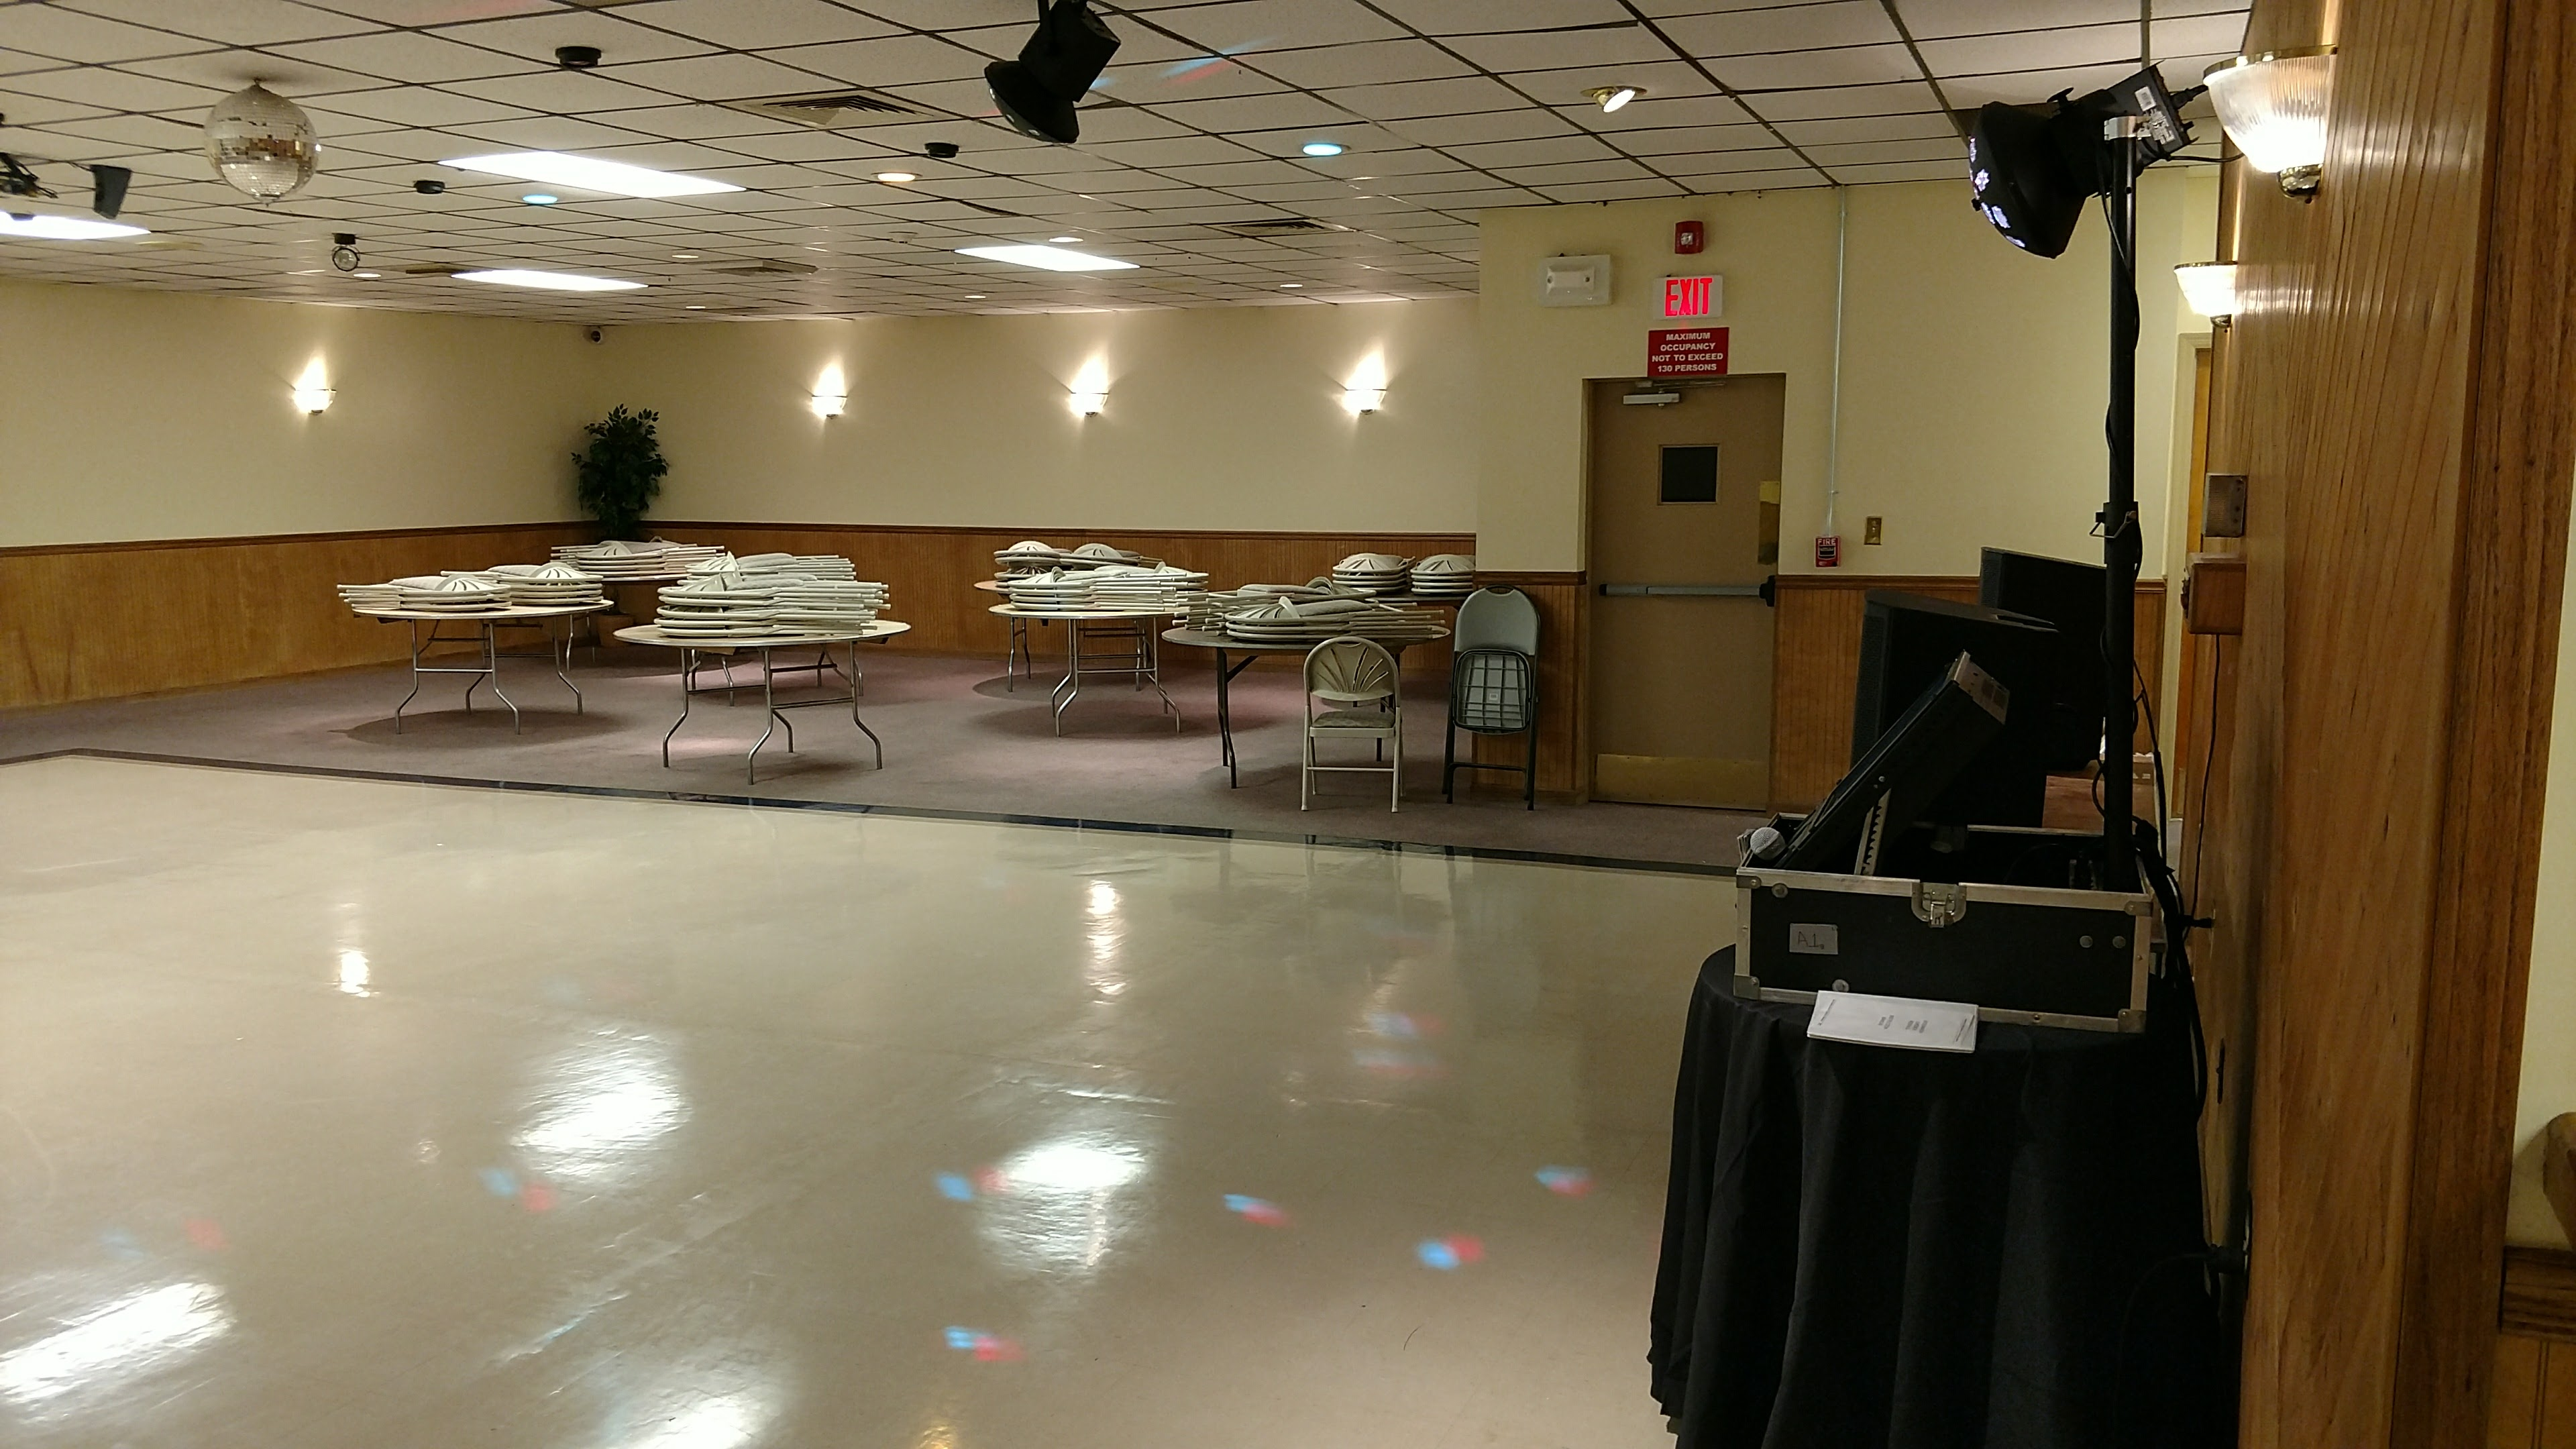 Banquet Rooms For Rent Delaware